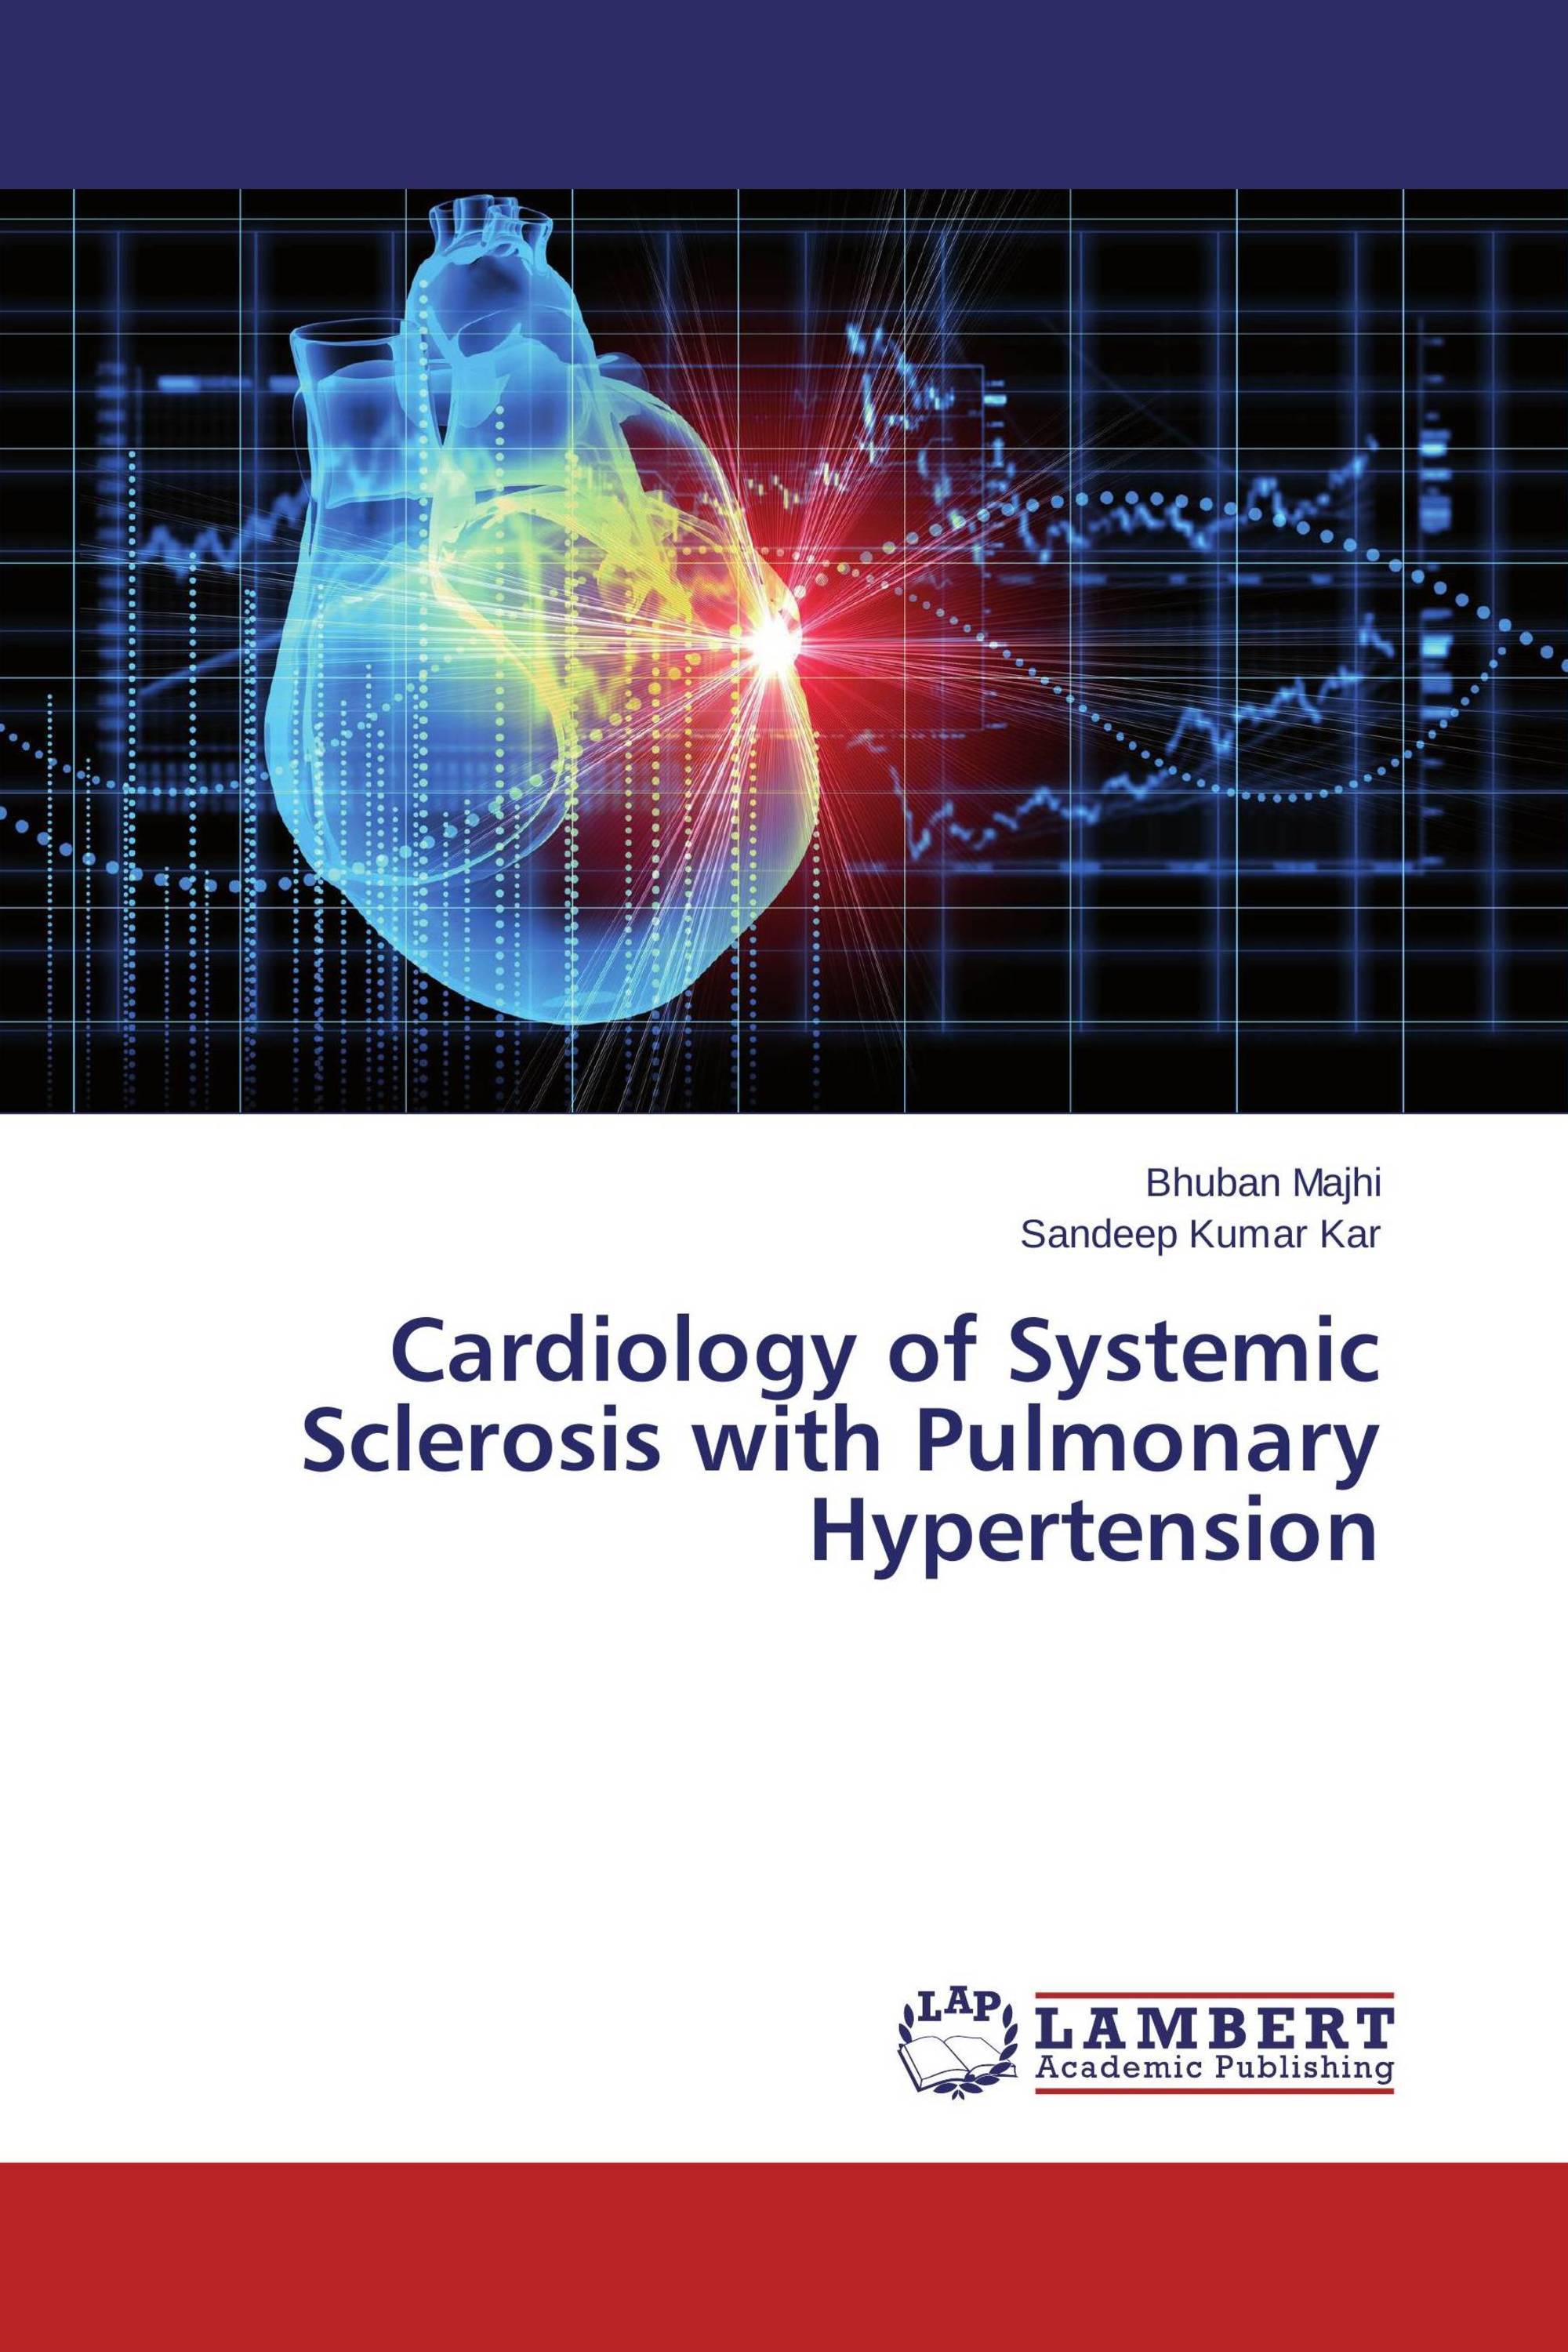 Cardiology of Systemic Sclerosis with Pulmonary Hypertension